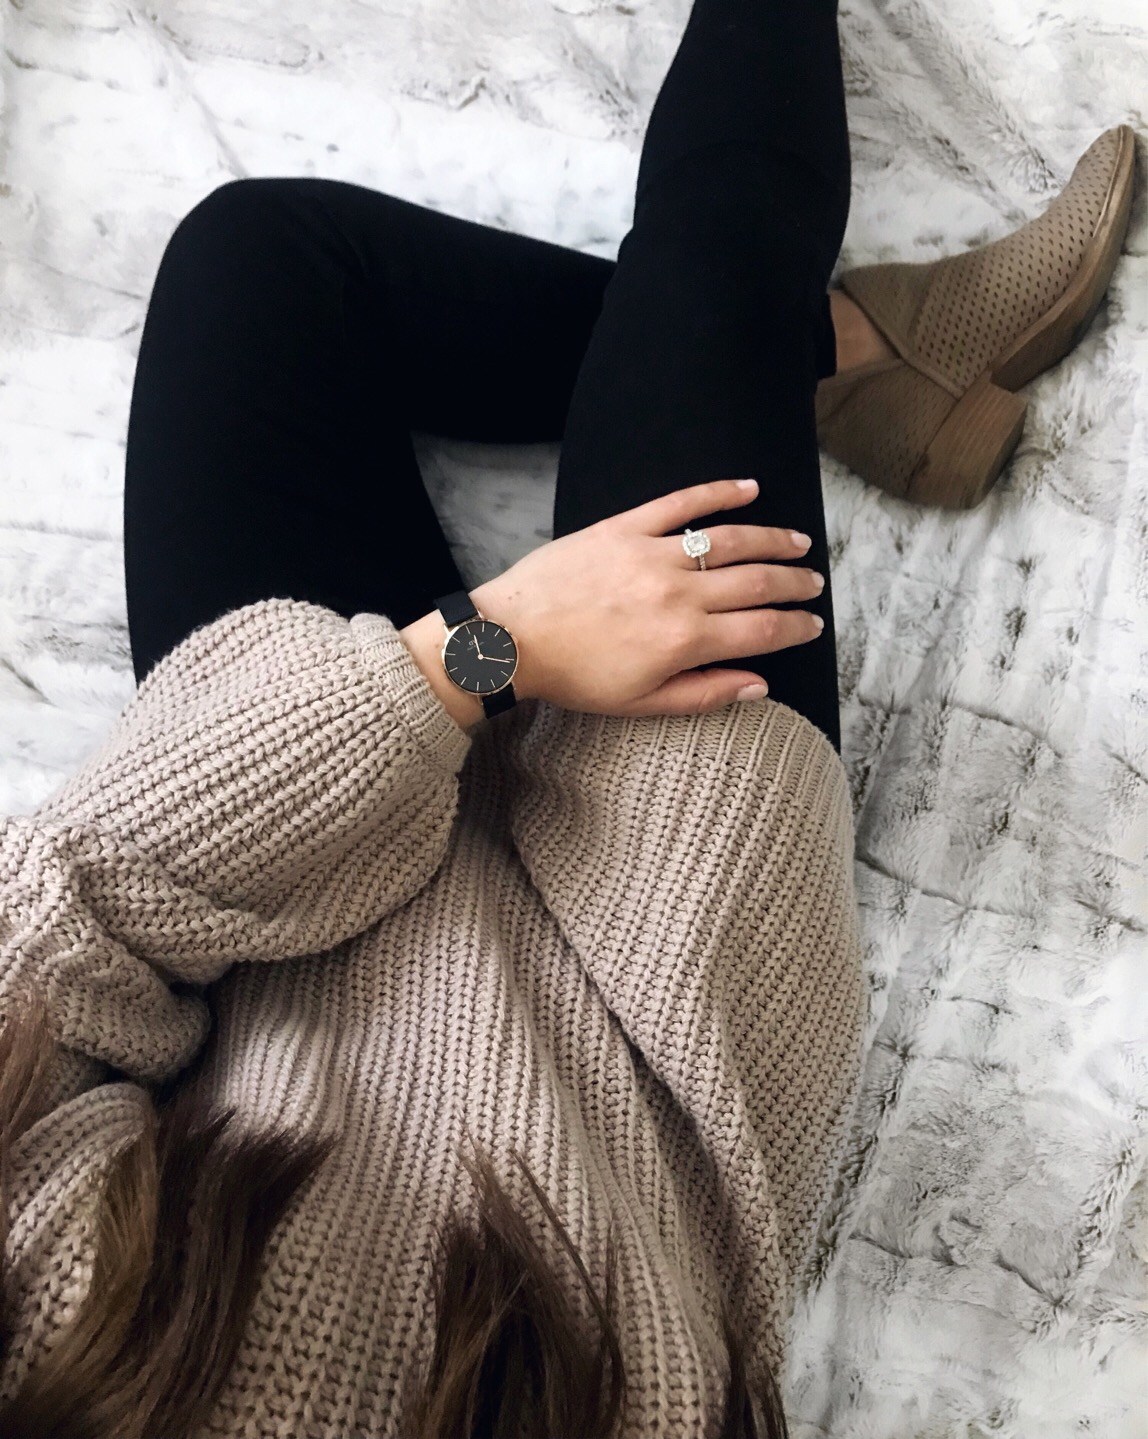 fall fashion / fall outfit idea / fall outfit inspiration / fall feels / fall vibes / view from above / oversized cozy sweater